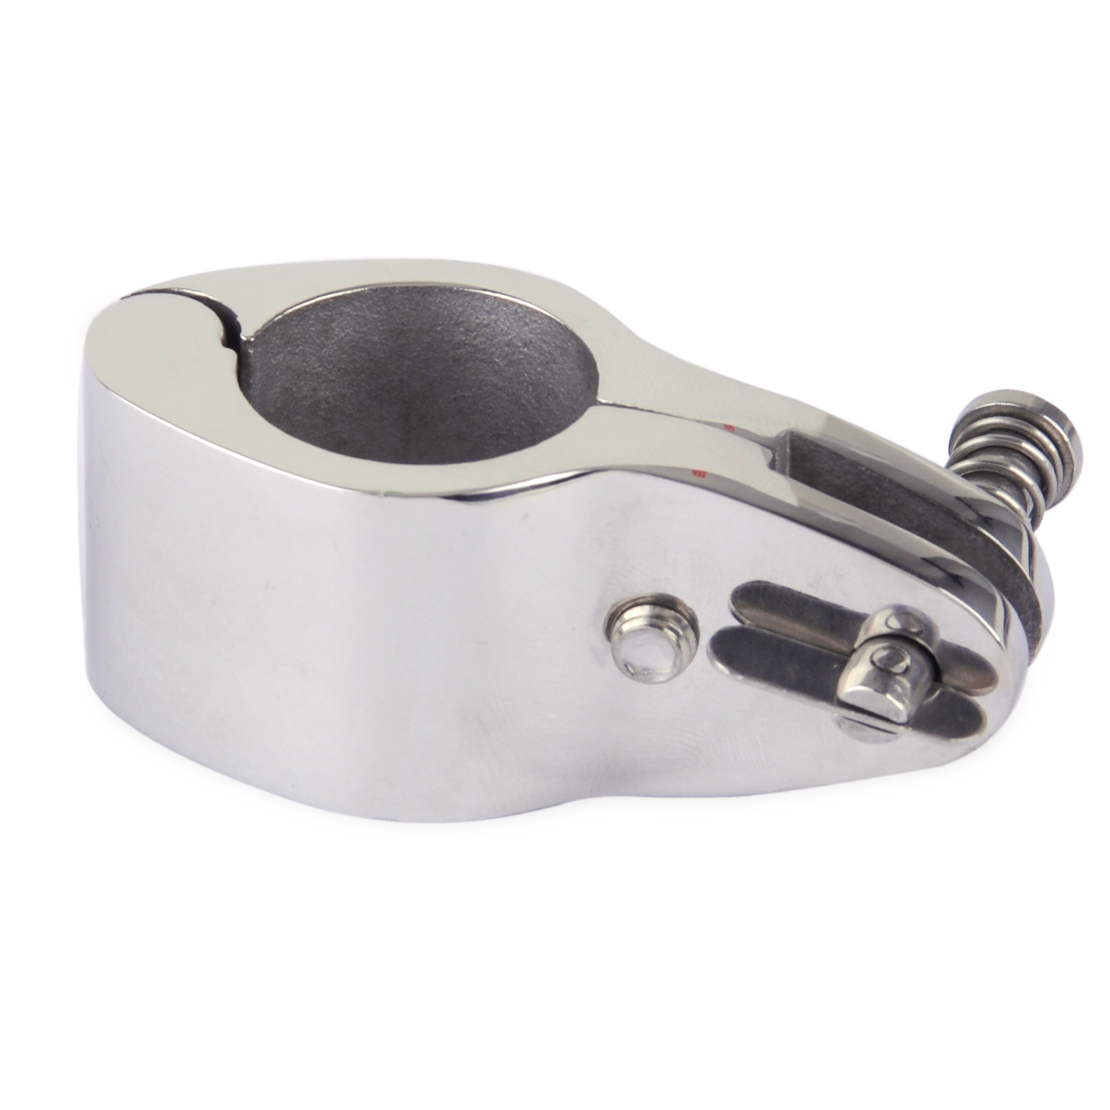 CITALL 1 Silver High Quality 316 Stainless Steel Boat Marine Yacht Jaw Slide Hinged Hardware Fittings